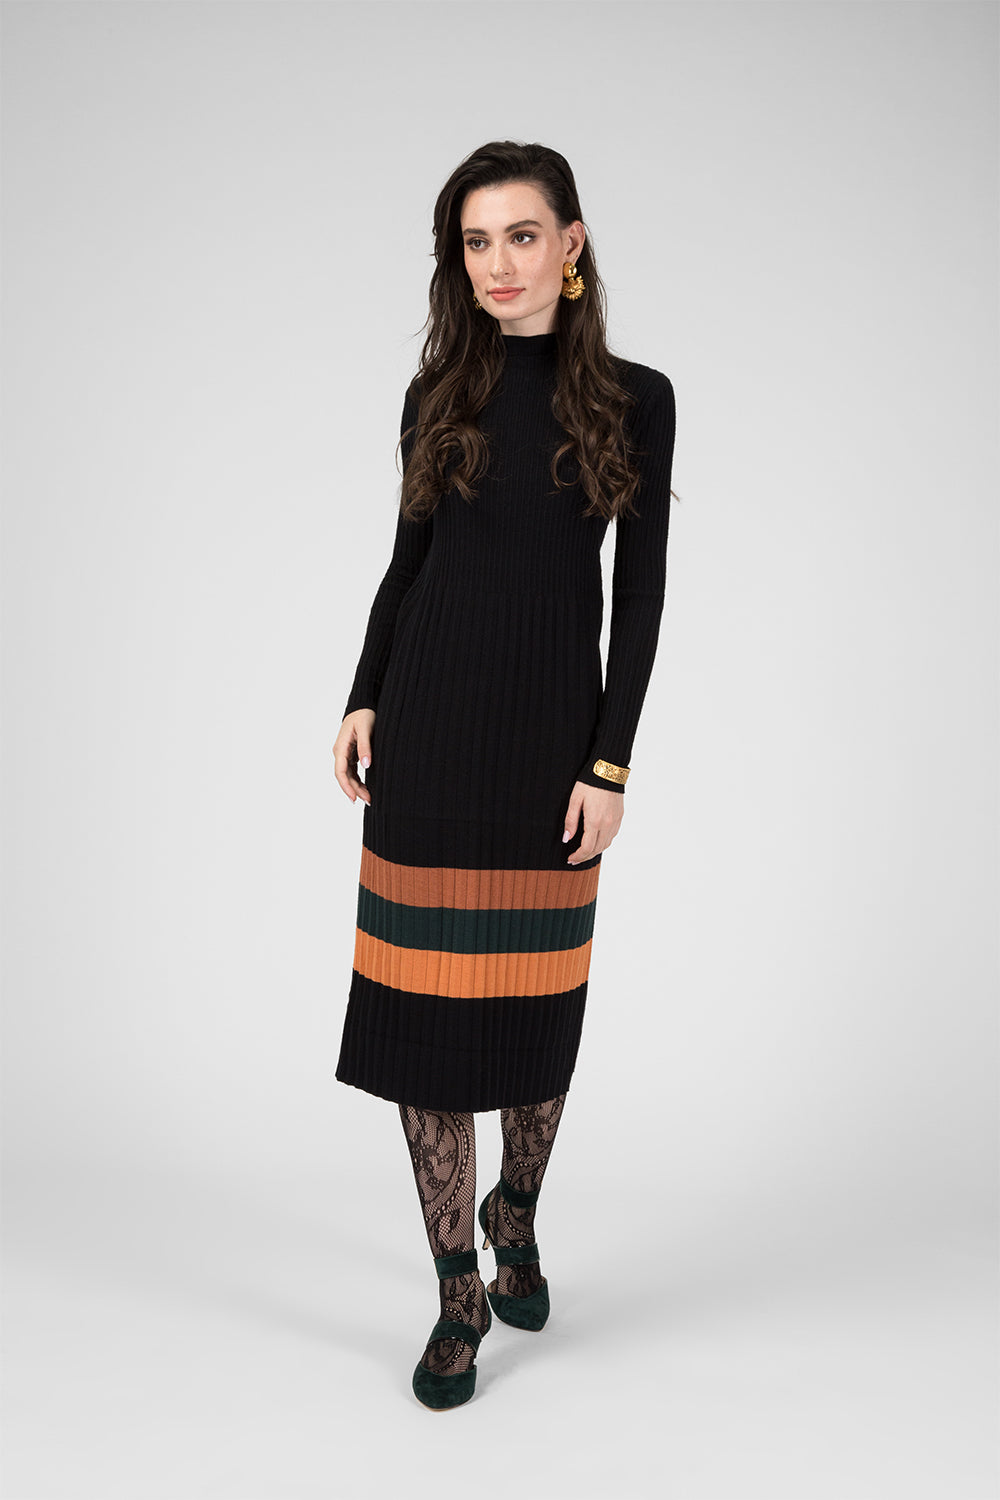 Black Knitted Dress with Pattern